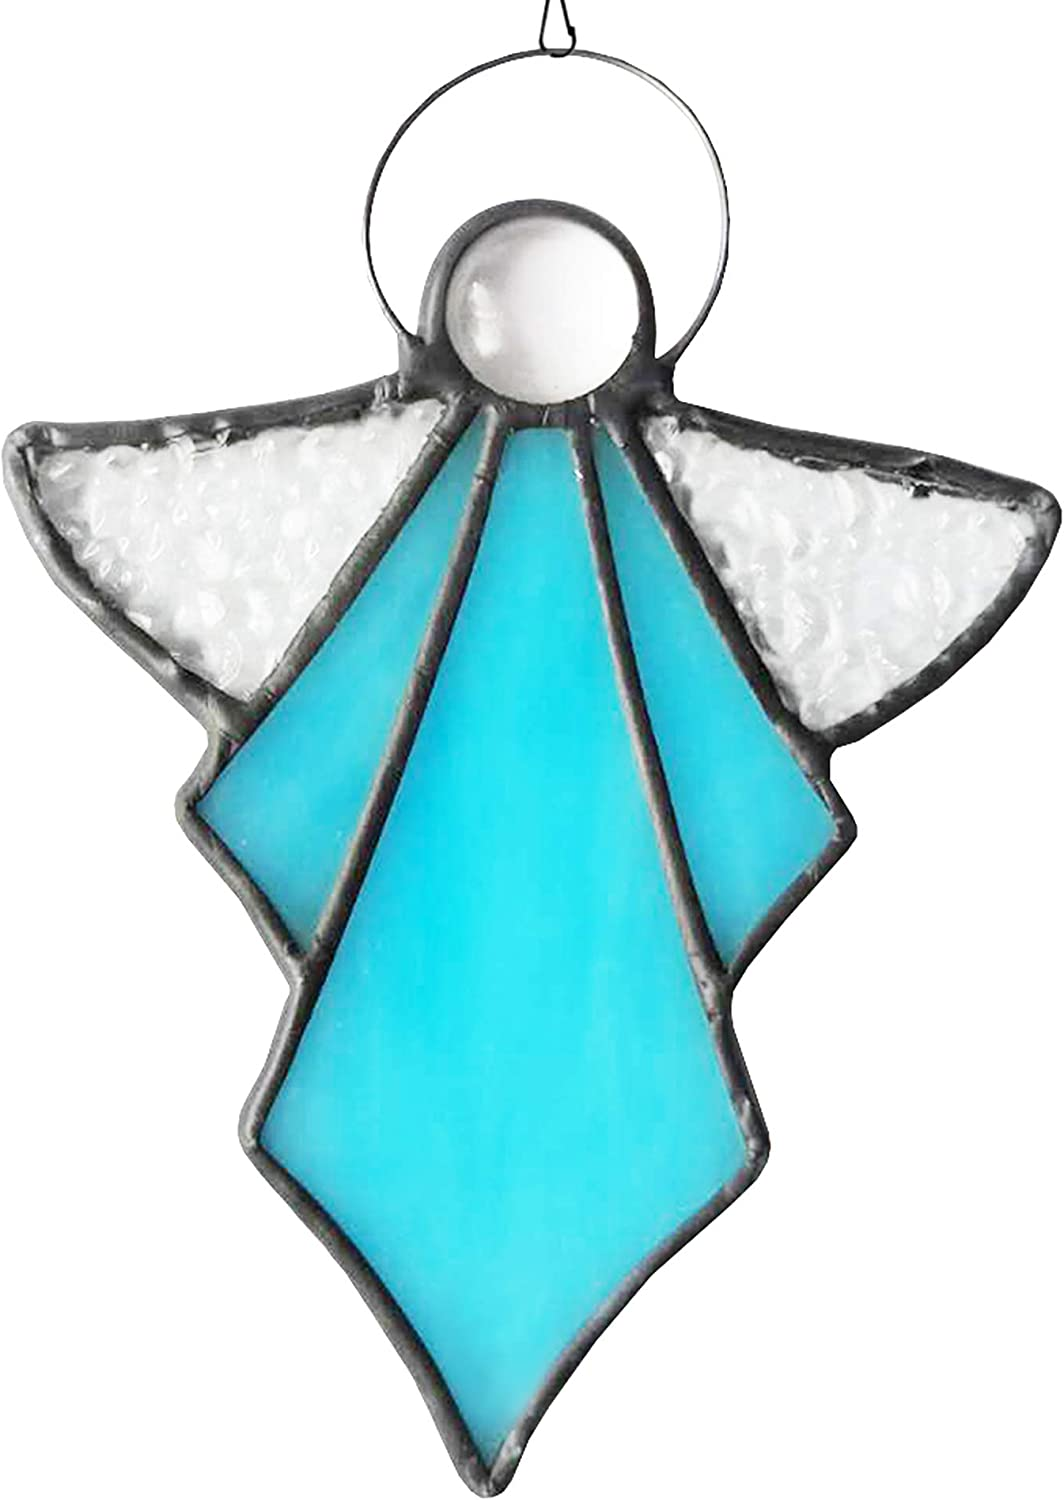 HAOSUM Angel Ornament Stained Glass Angel Stained Glass Window Hangings Ornament Holiday Decor Memorial Remembrance Sympathy Gifts,Angel Gifts for Women(Blue) 5.5